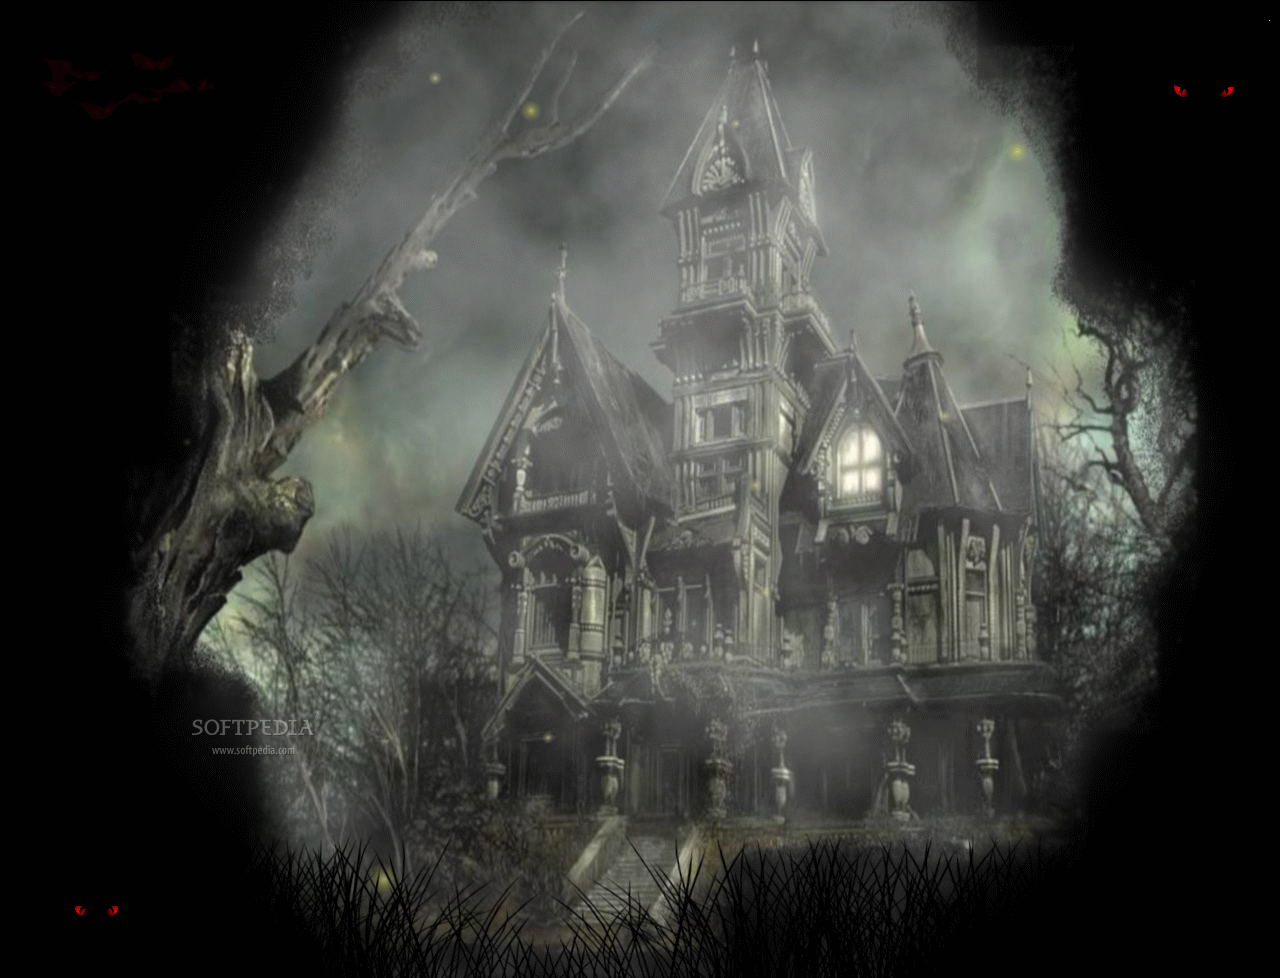 Mansion Animated Wallpaper   Halloween Mansion Animated Wallpaper 1280x978